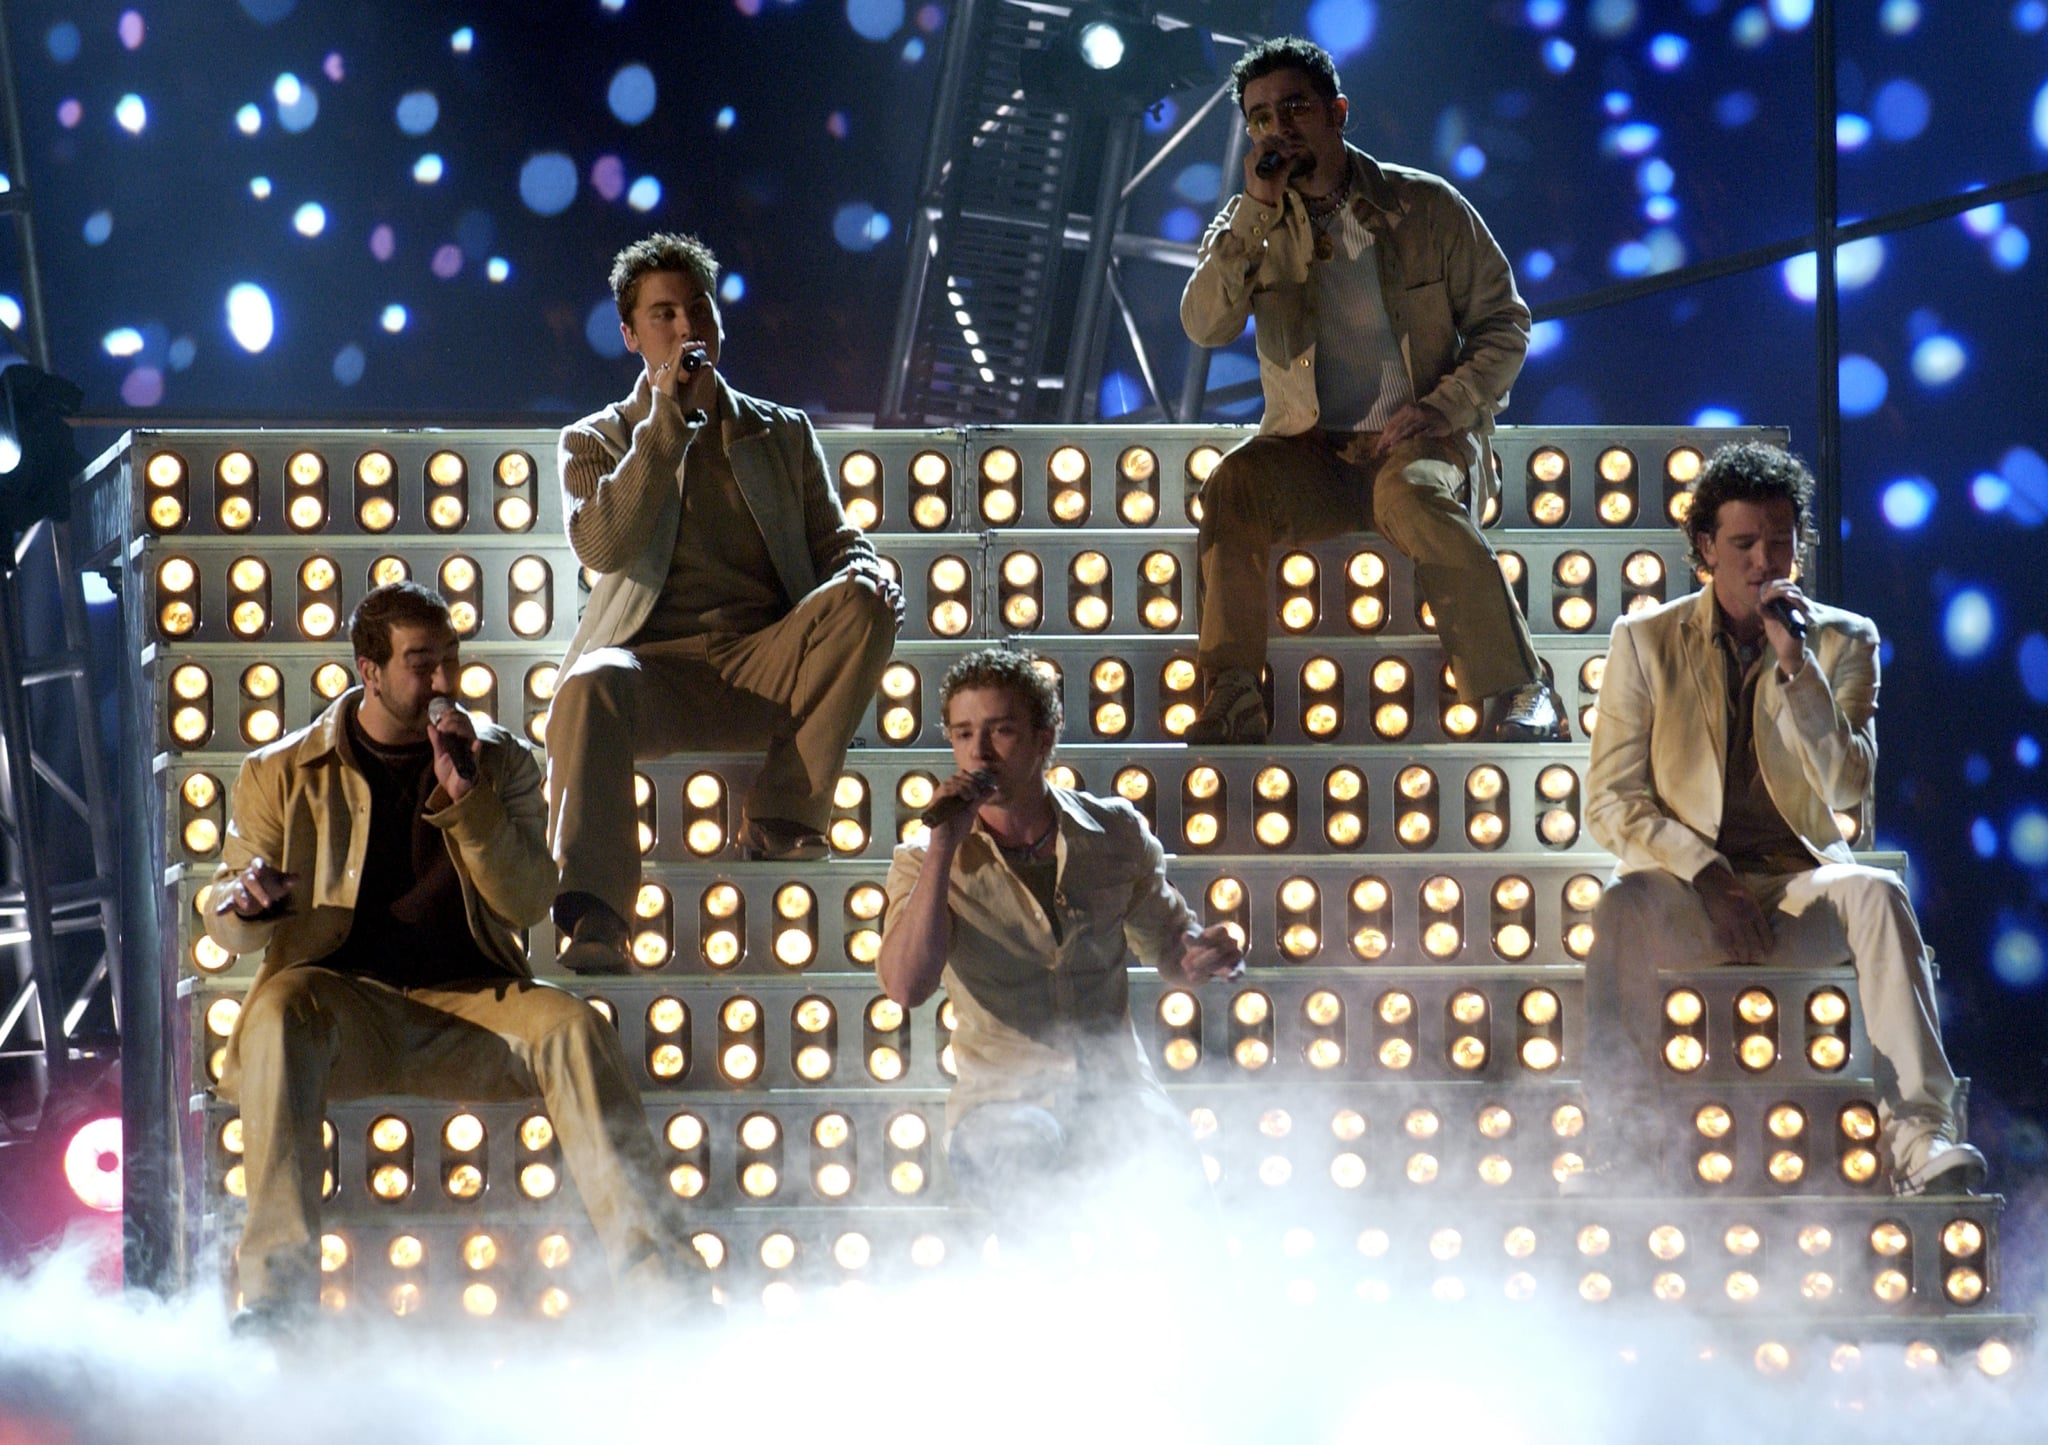 'NSYNC sat down for a special Billboard Music Awards show in December 2001.